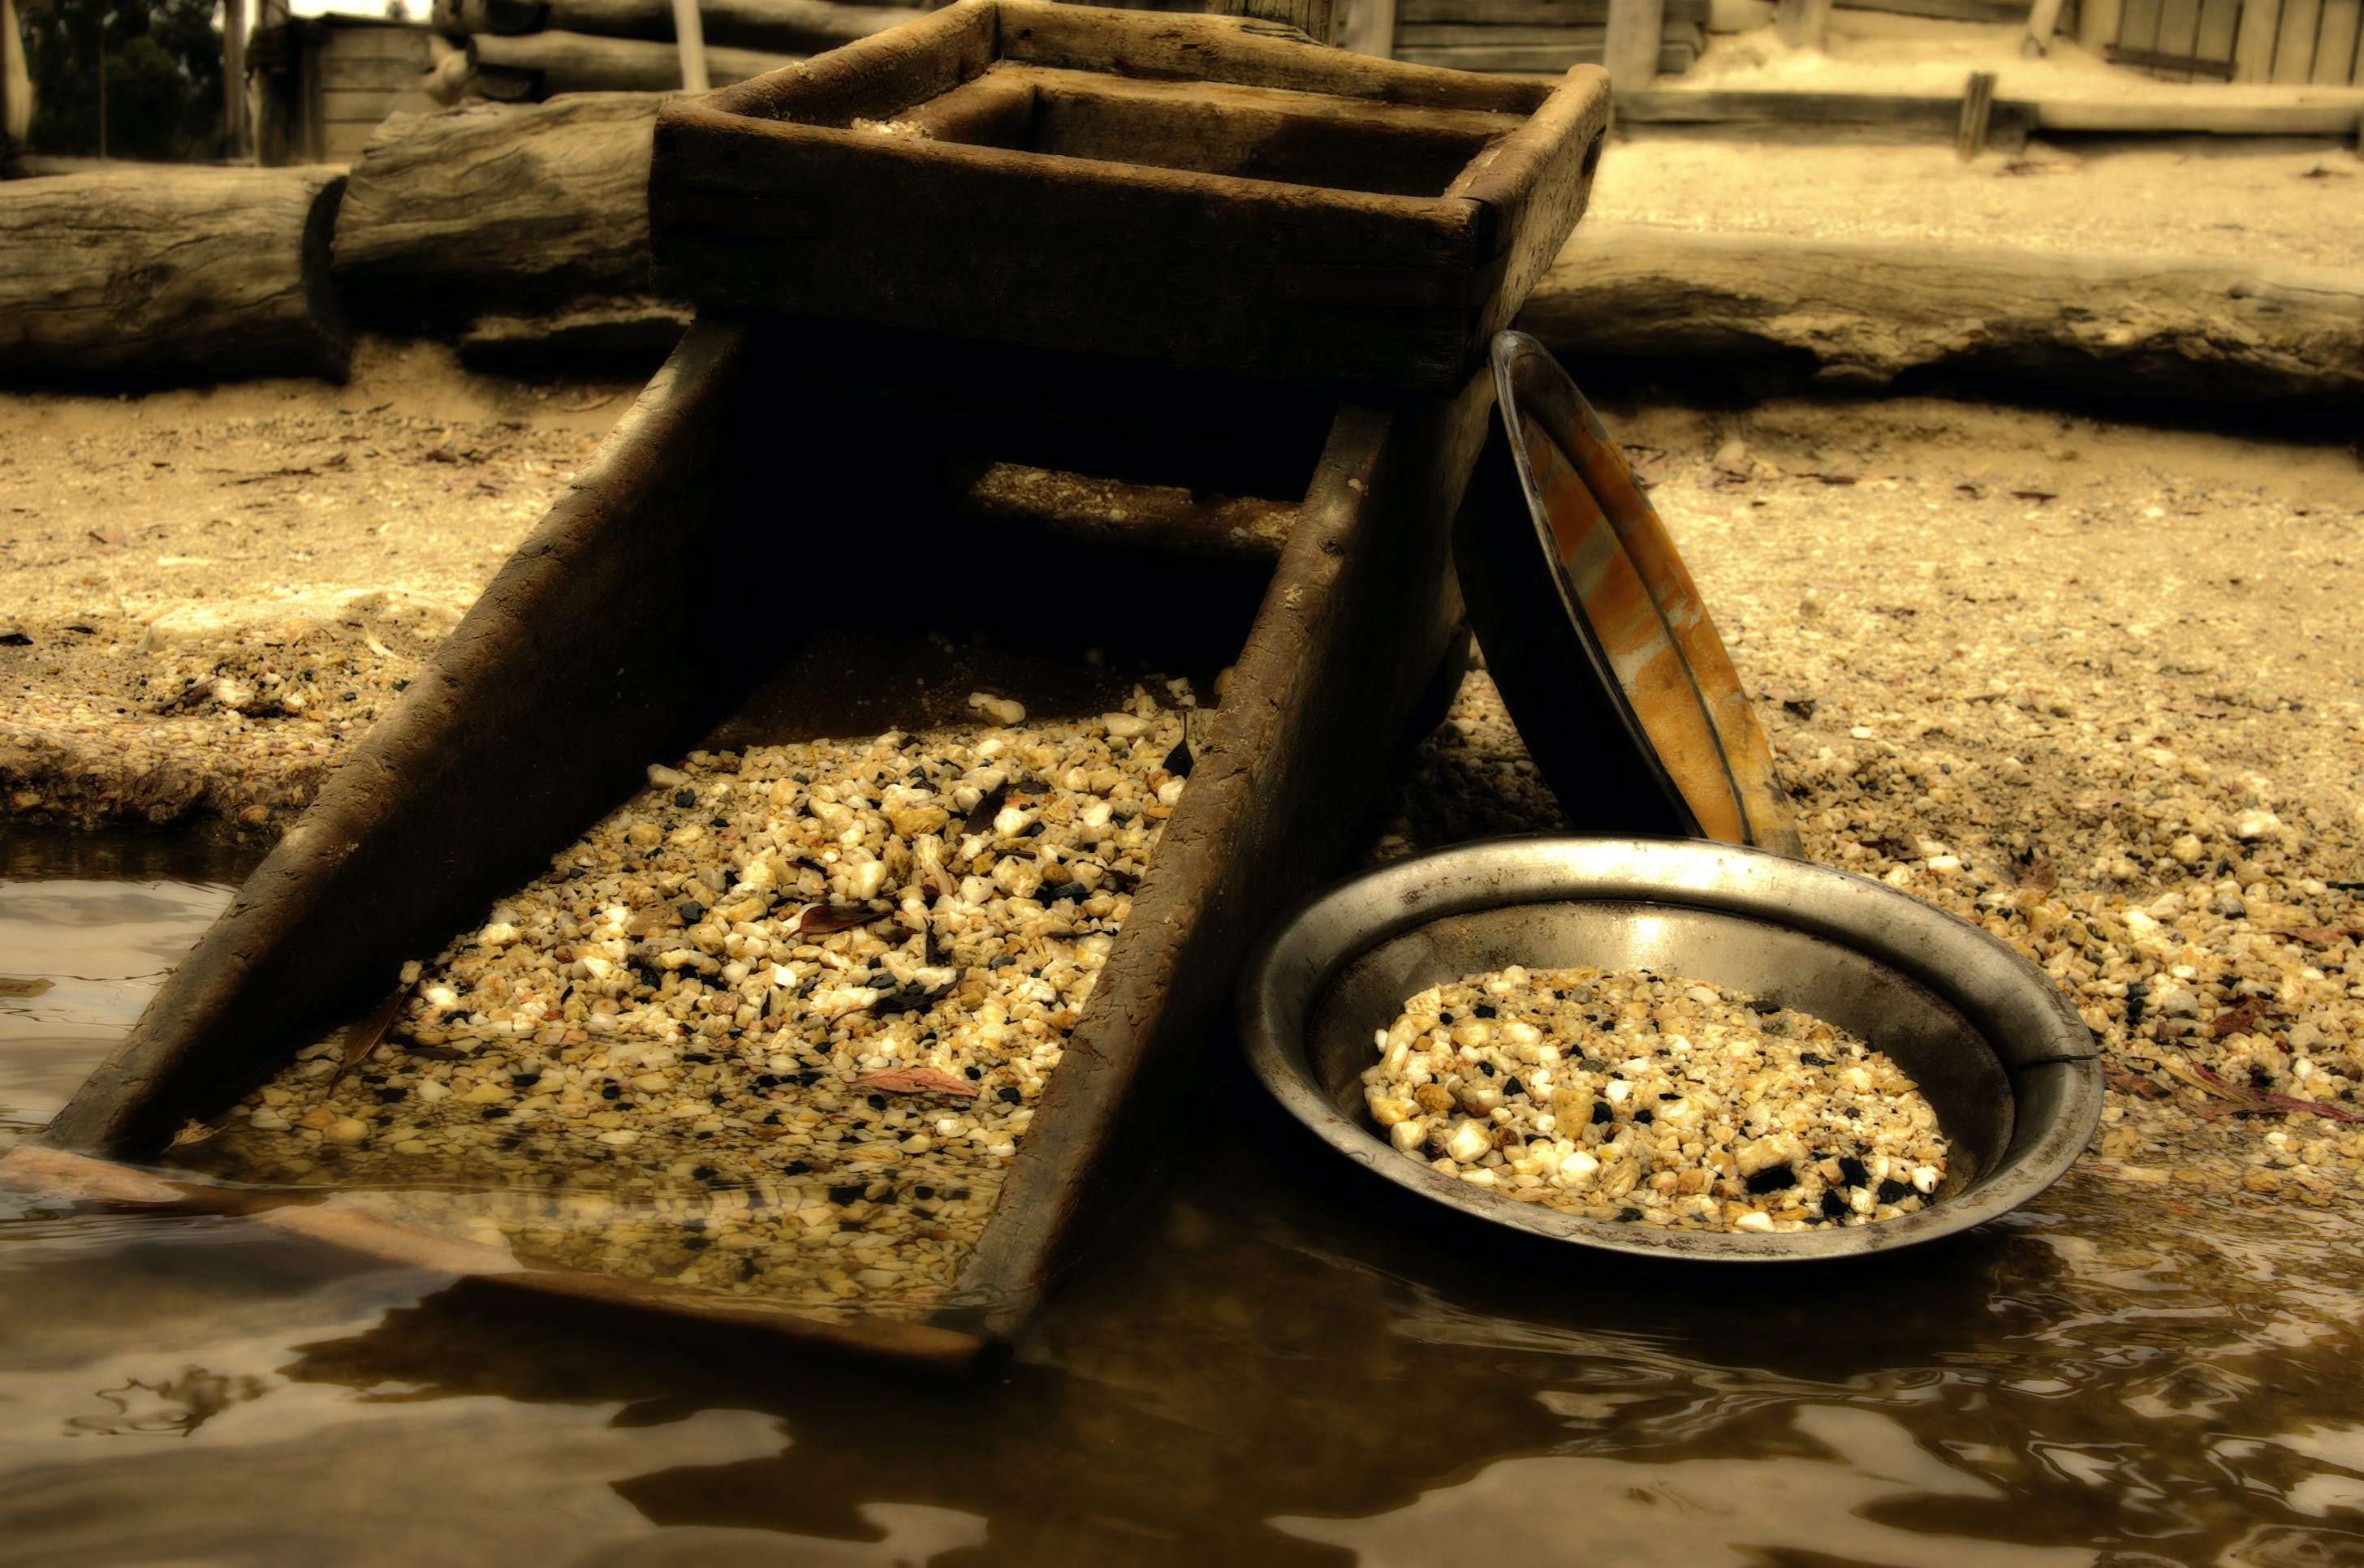 pan with gold in river